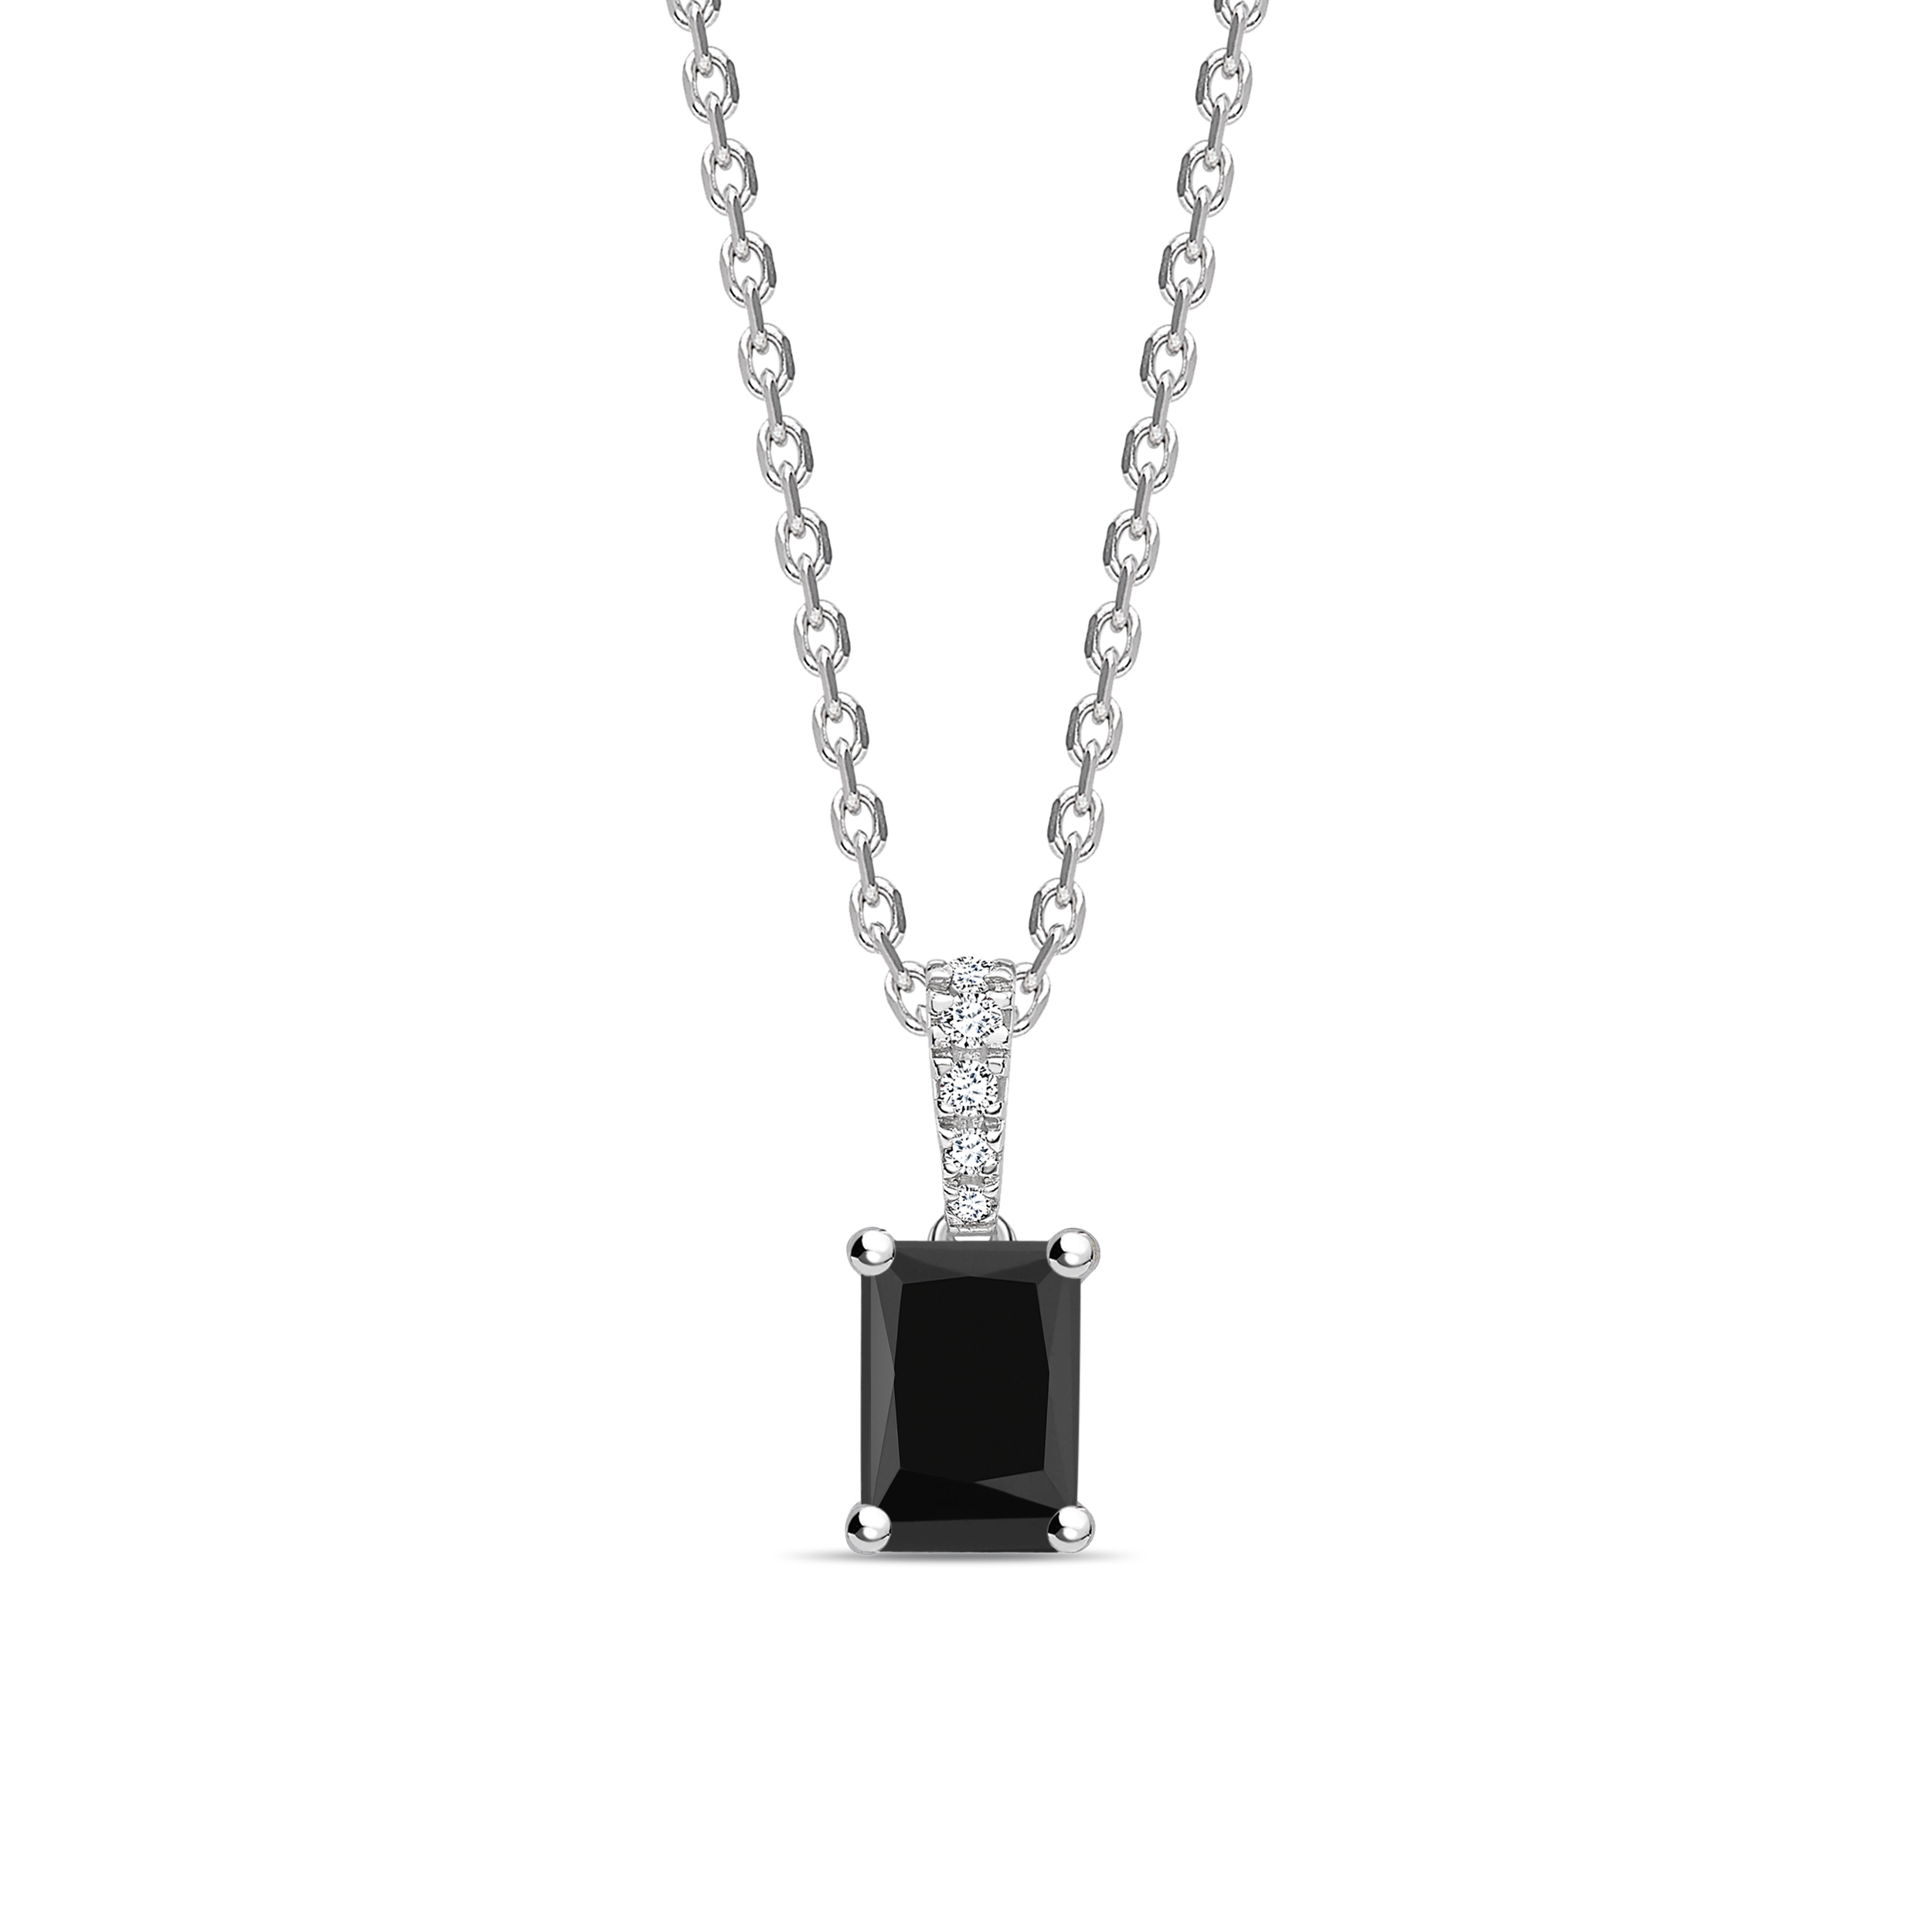 Emerald Cut Halo Style Black Diamond Solitaire Pendants Necklace